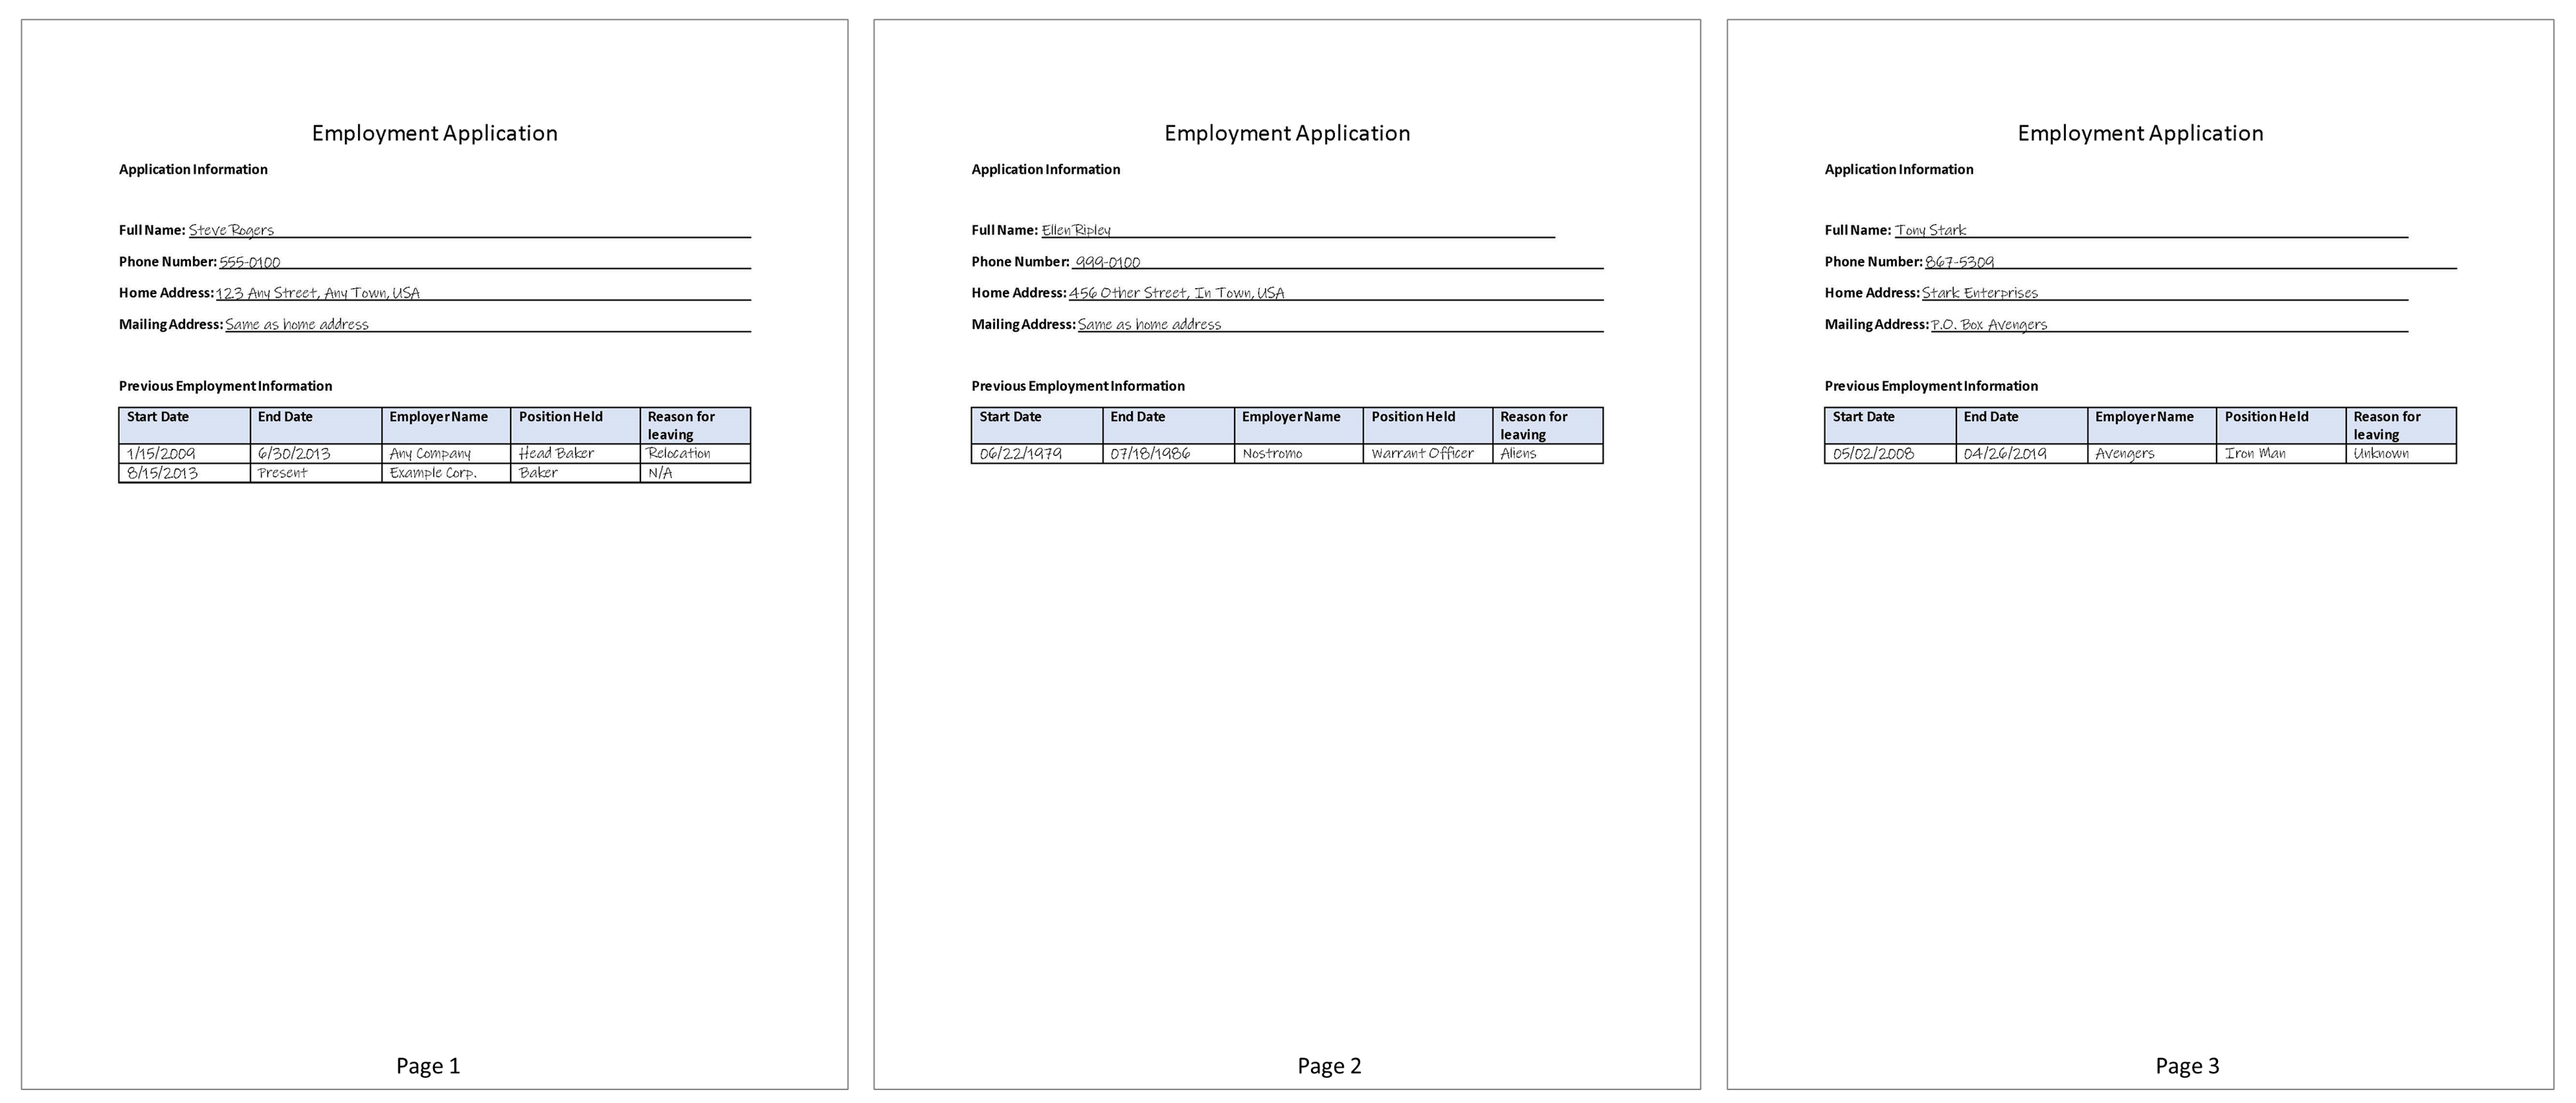 Pages used in this example (note - the actual document analyzed was a PDF that included these pages)